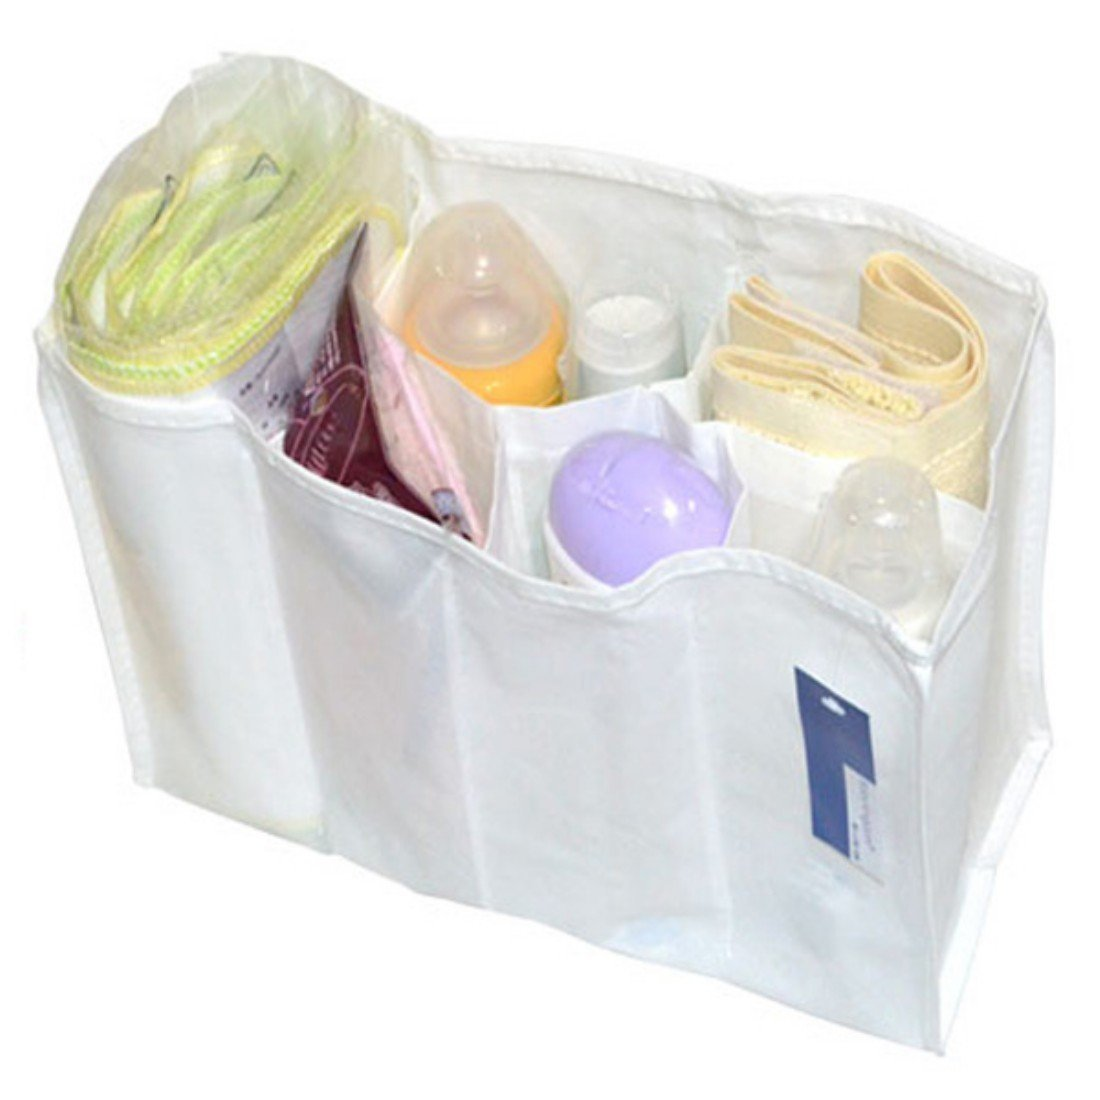 tfrdertuuigf Baby Diaper Nappy Changing Mother Bag Cell Divider Storage Bag (M)